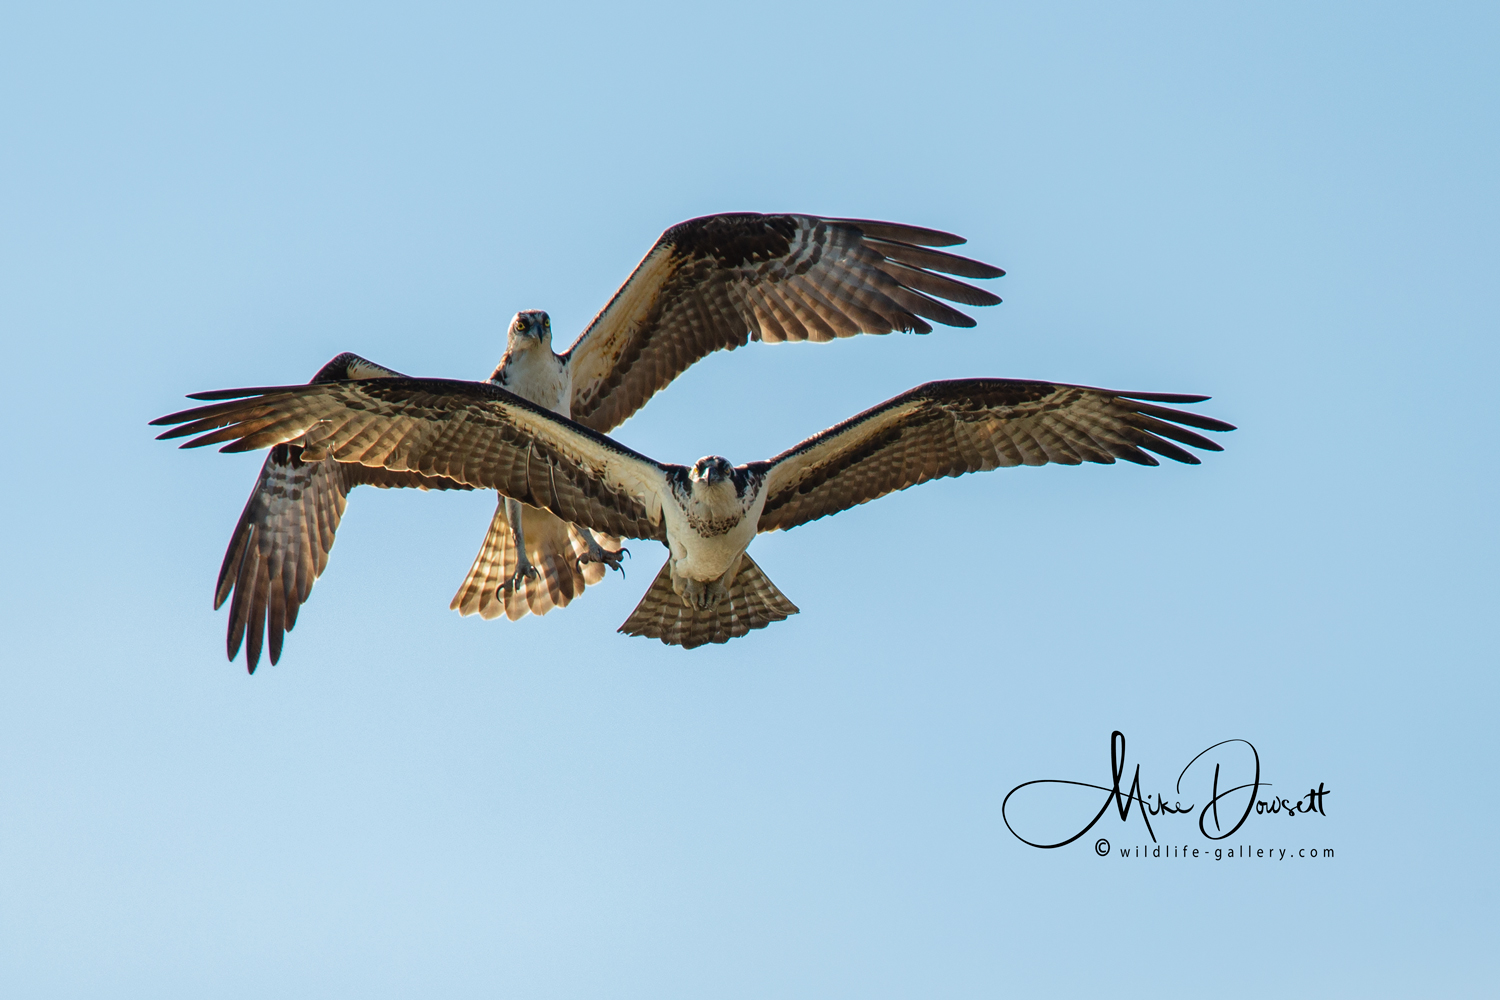 This pair of Osprey looked to really enjoy being together & flew side by side, very close. The Male is behind.